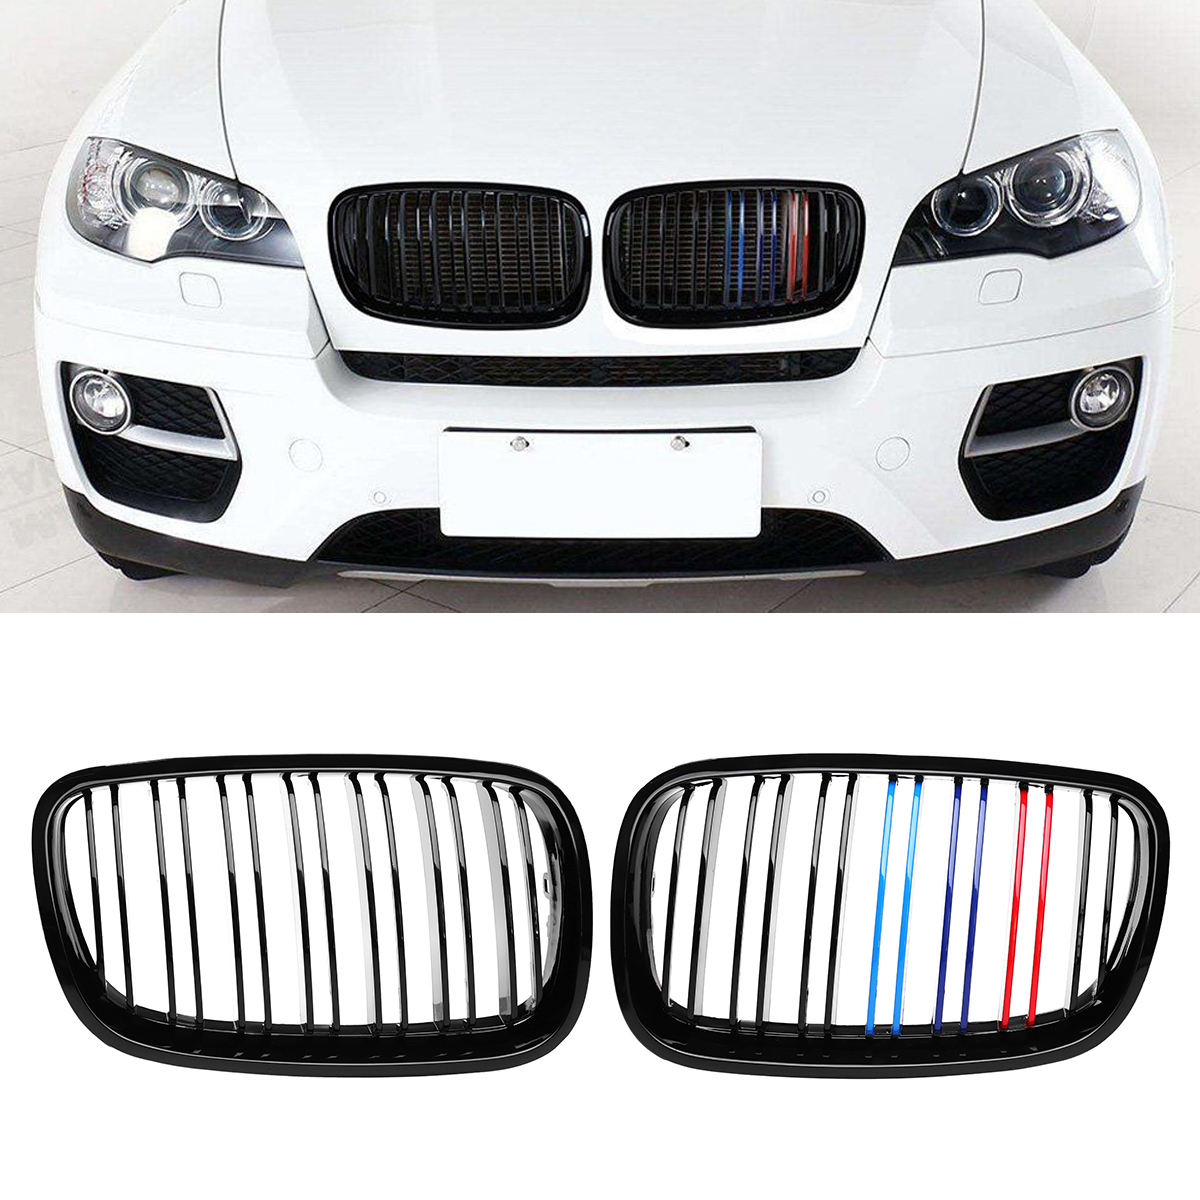 2piece Car Bumper Hood ABS Glossy Black M-Color Front Grille Grill Double Slat Kidney for BMW X5 X6 E70 E71 2007-2013 car bight glossy black double slat front grille grill for bmw e92 lci facelift e93 2011 2012 2013 c 5